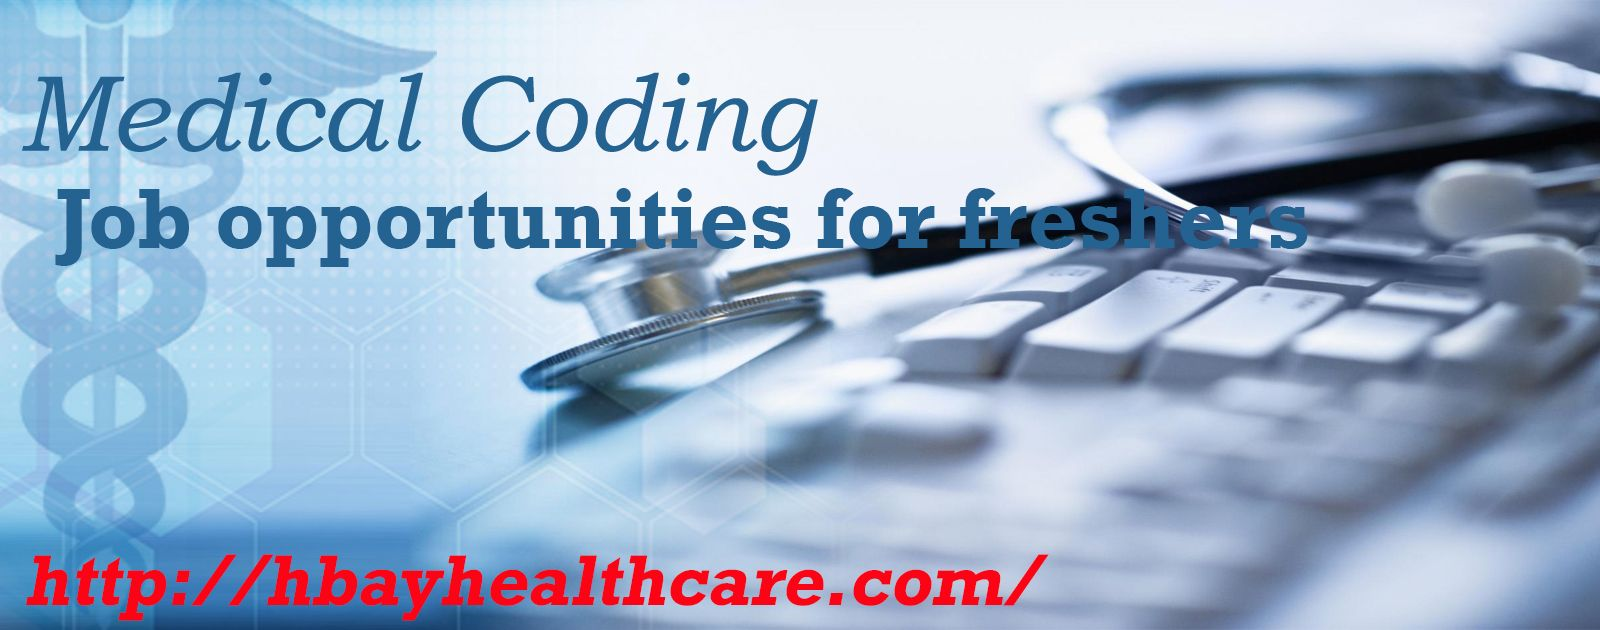 Medical coding job opportunities are available in chennai